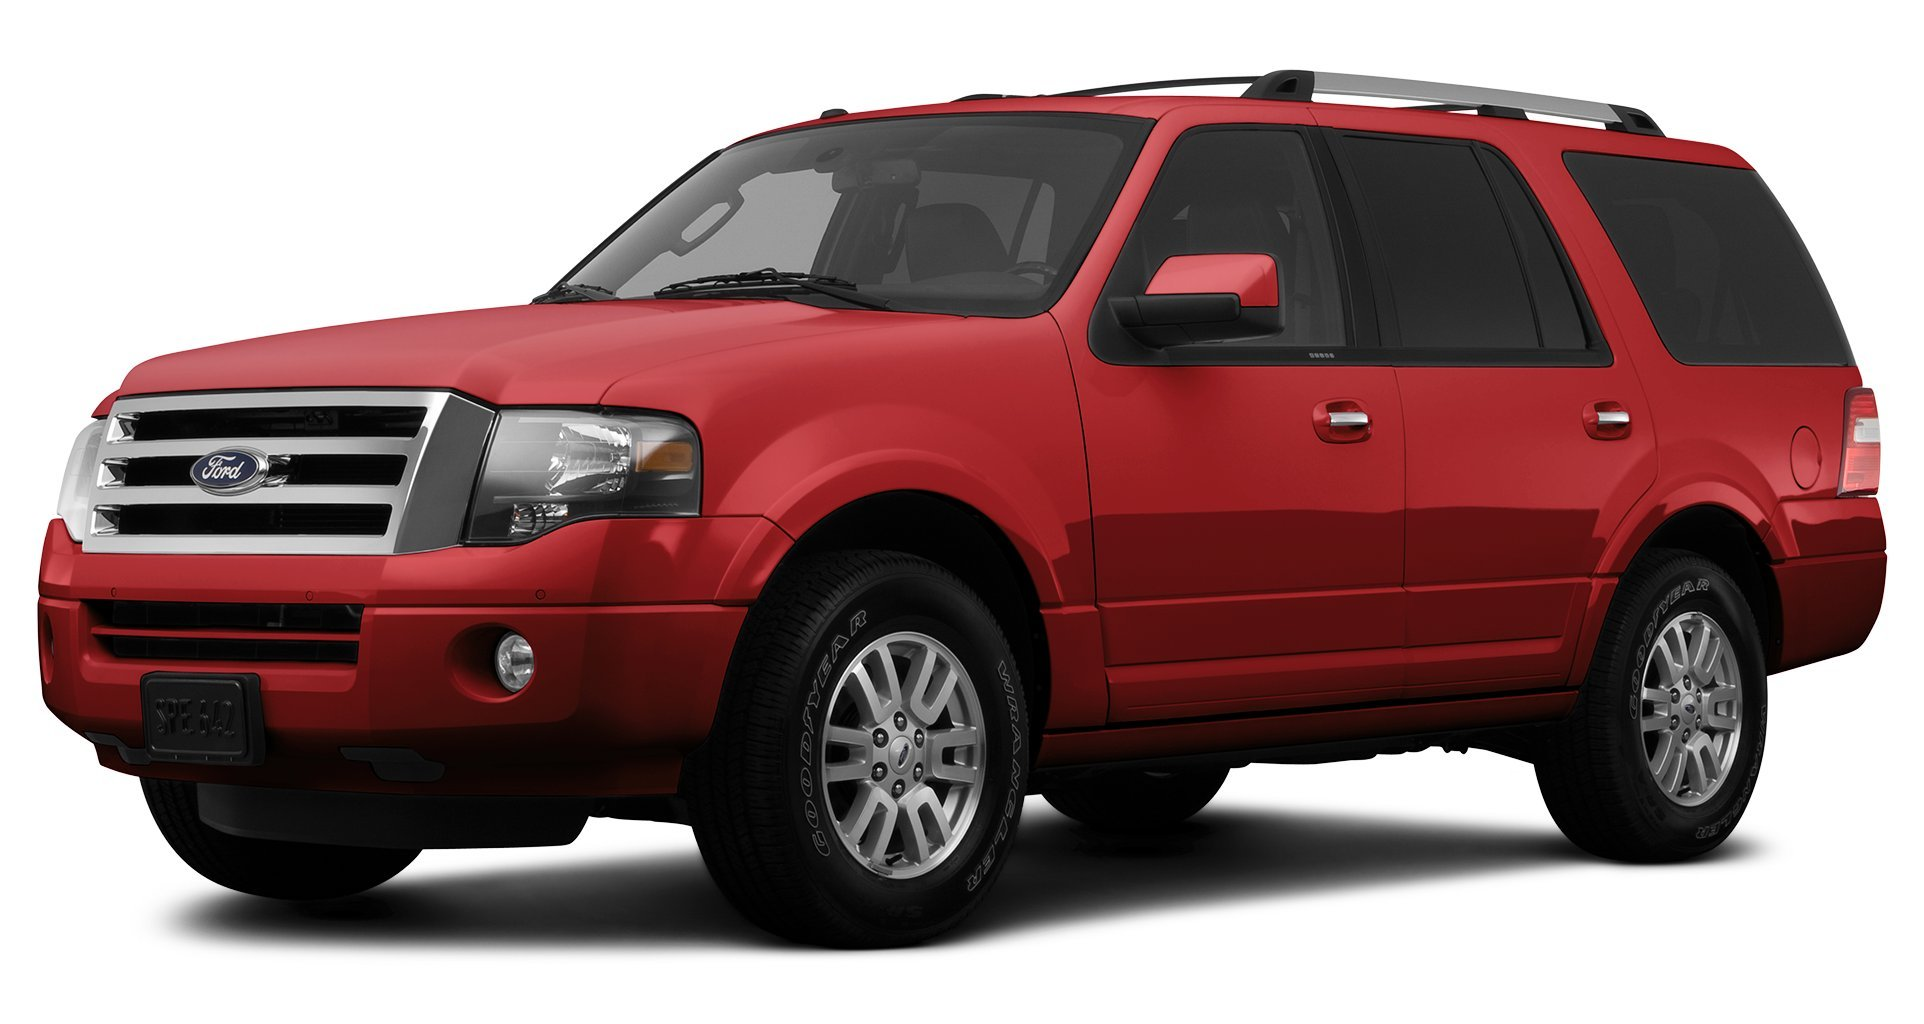 2012 ford expedition reviews images and specs vehicles. Black Bedroom Furniture Sets. Home Design Ideas